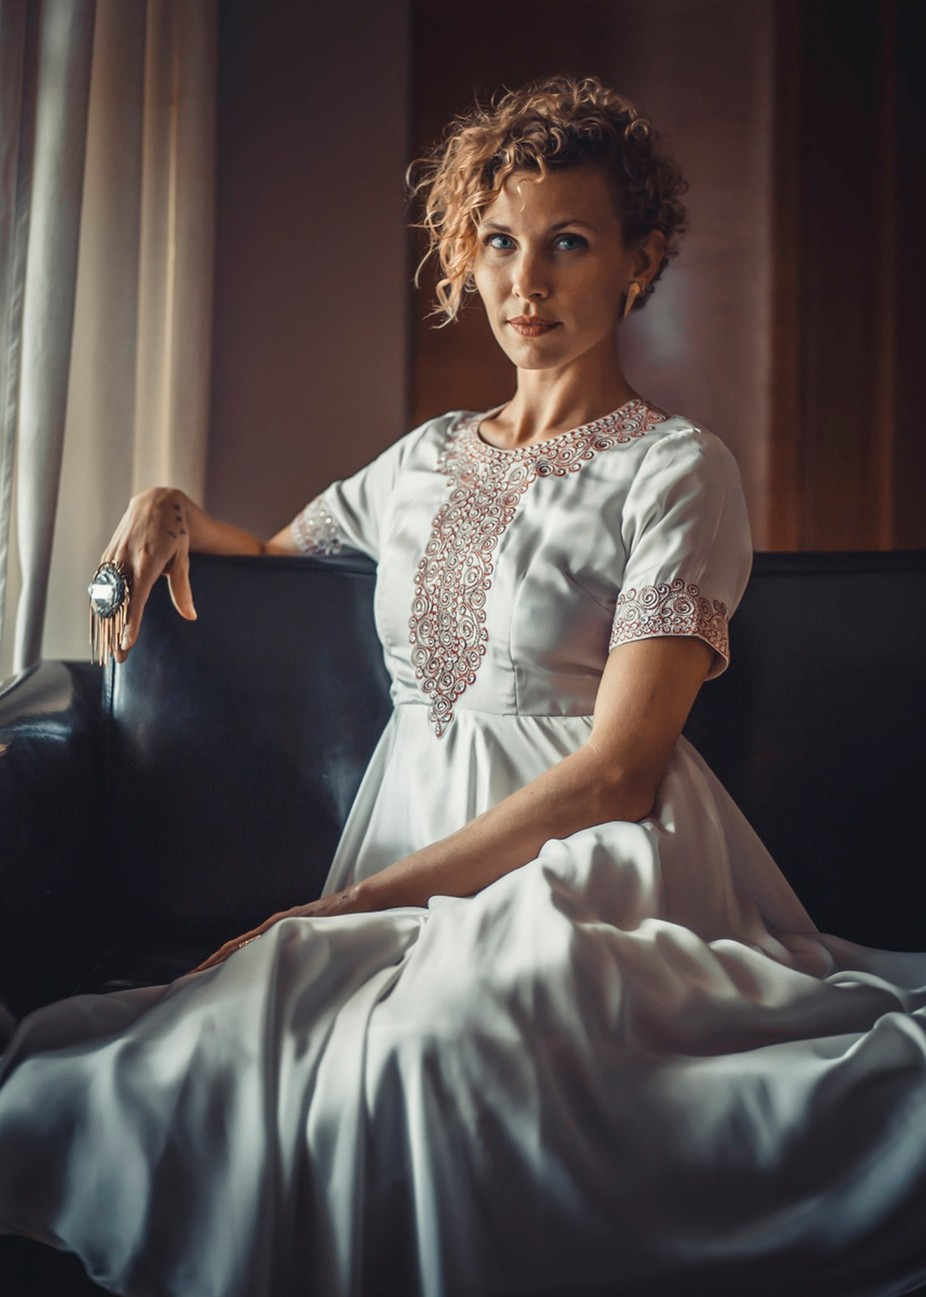 Cristen White Dress by JohnGibsonVisuals - Elegant Moments Photo Contest